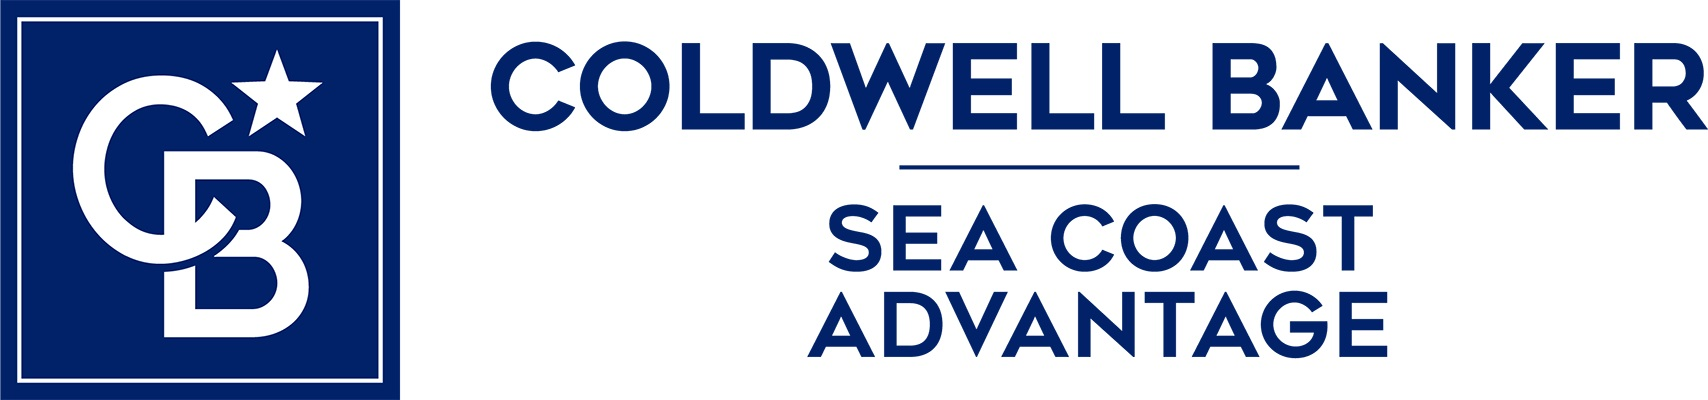 Kelly Wiggins - Coldwell Banker Sea Coast Advantage Realty